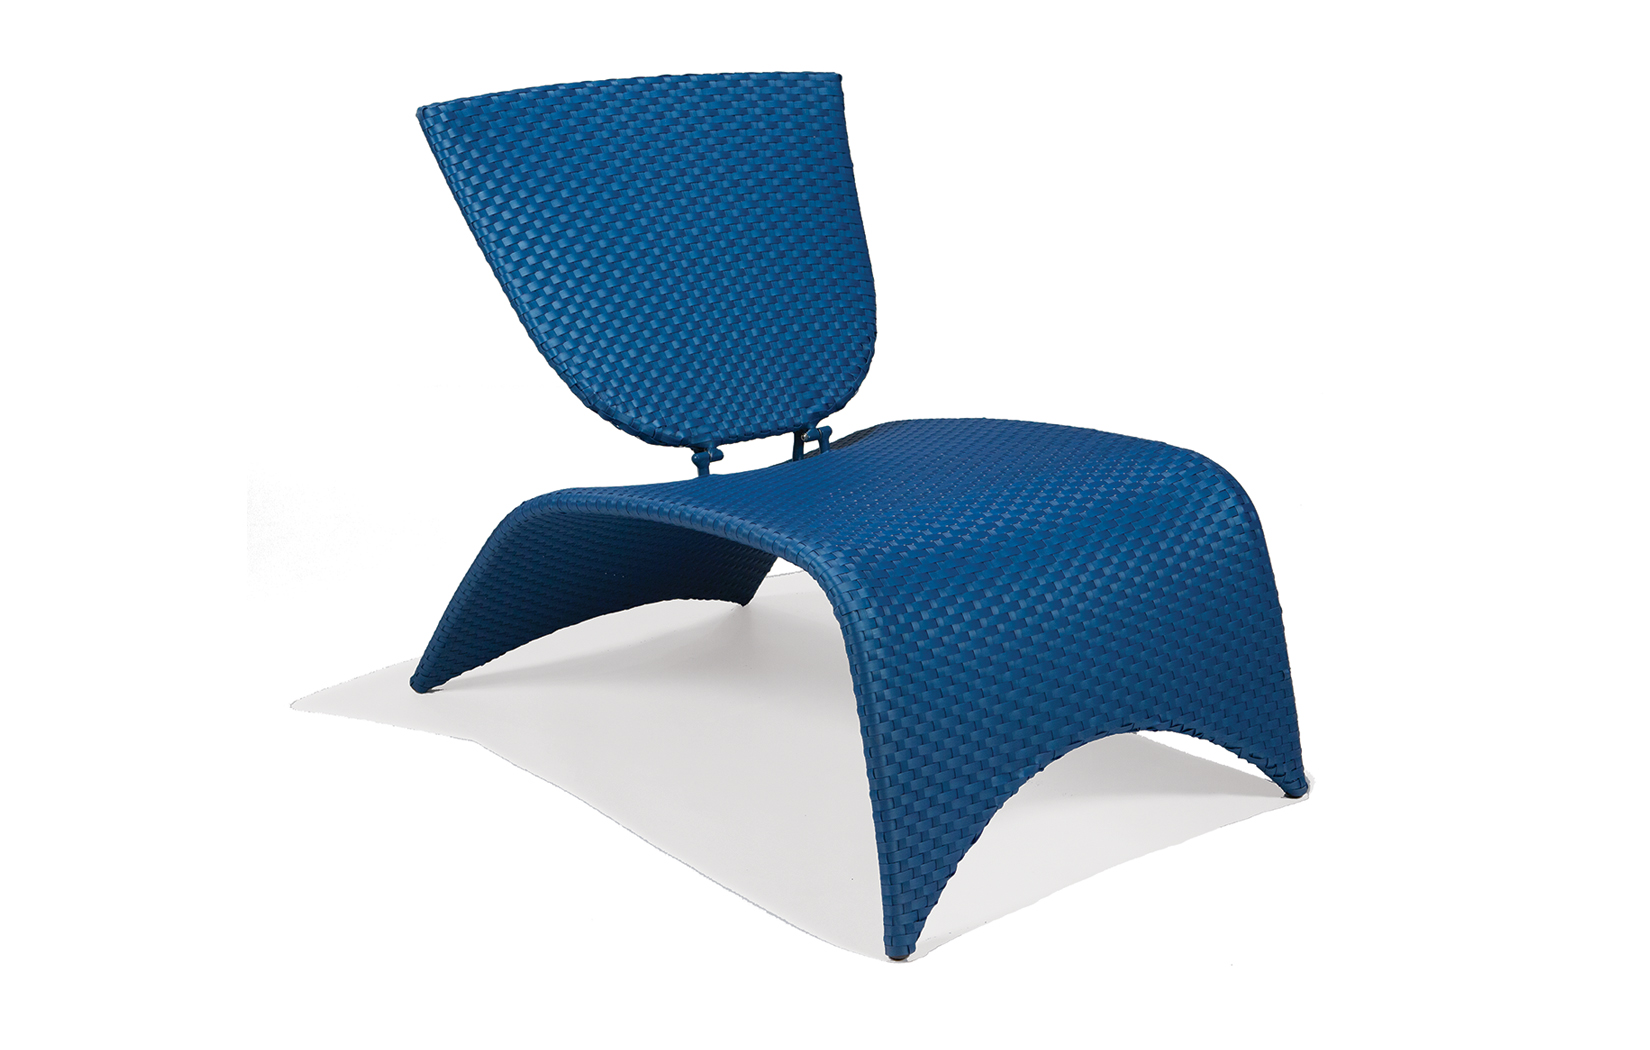 M87002SAP  Zuma Collection Lounge Chair with Folding Back (Sapphire)